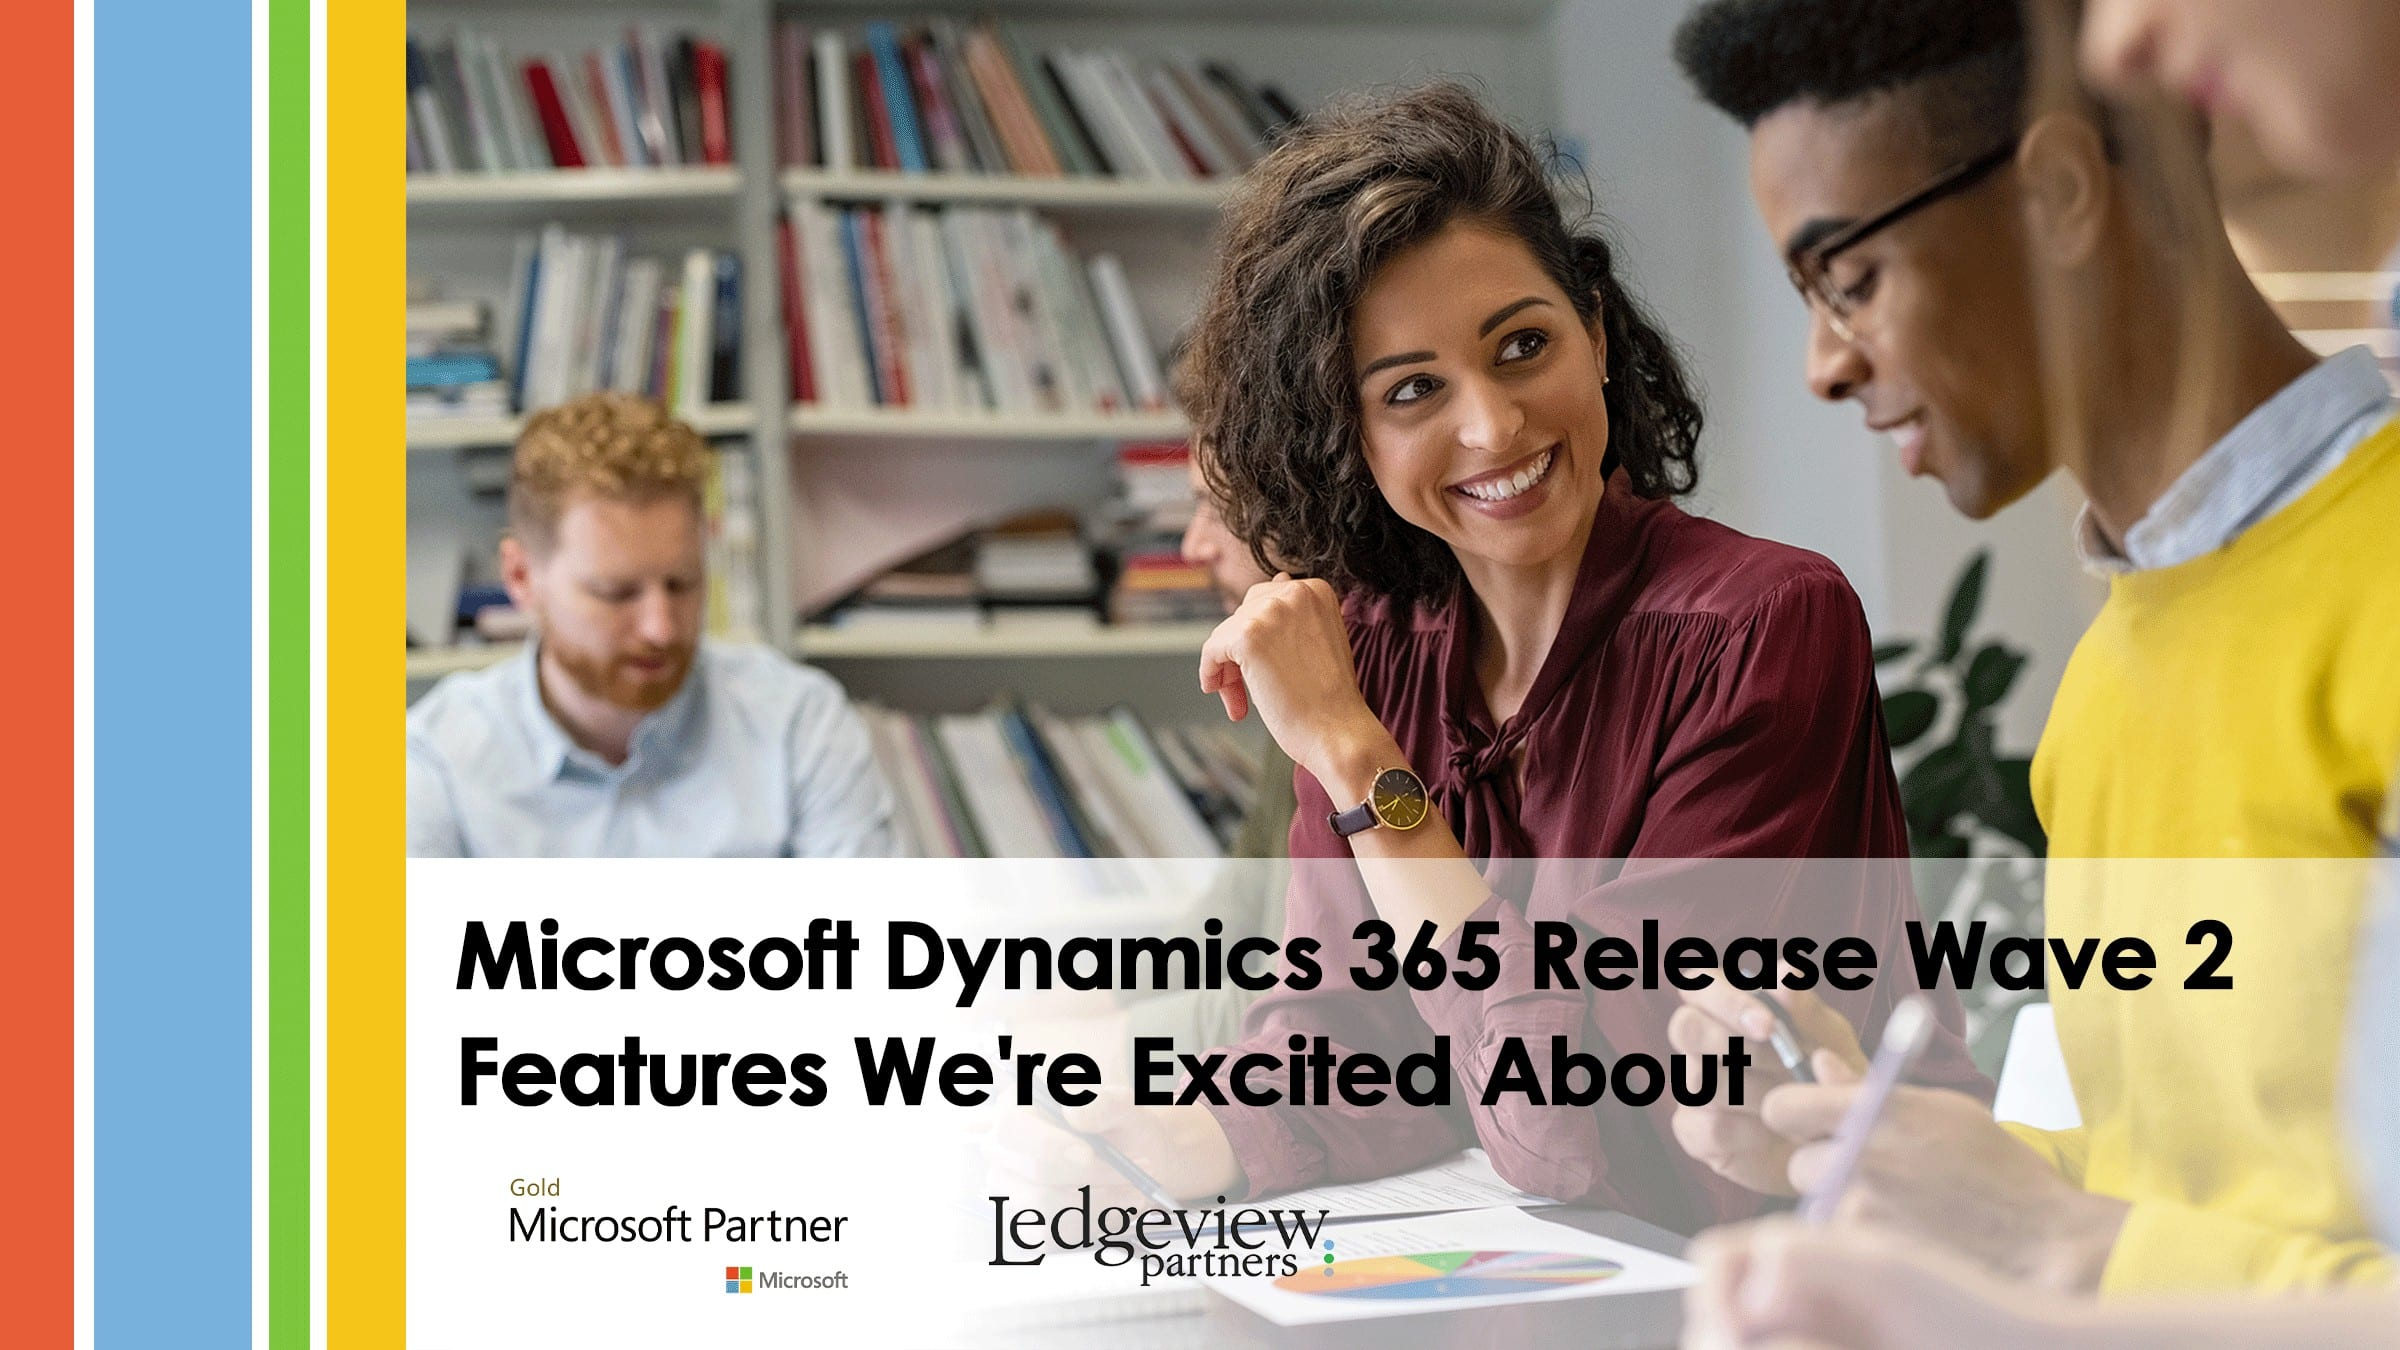 Microsoft Dynamics 365 Release Wave 2 Features